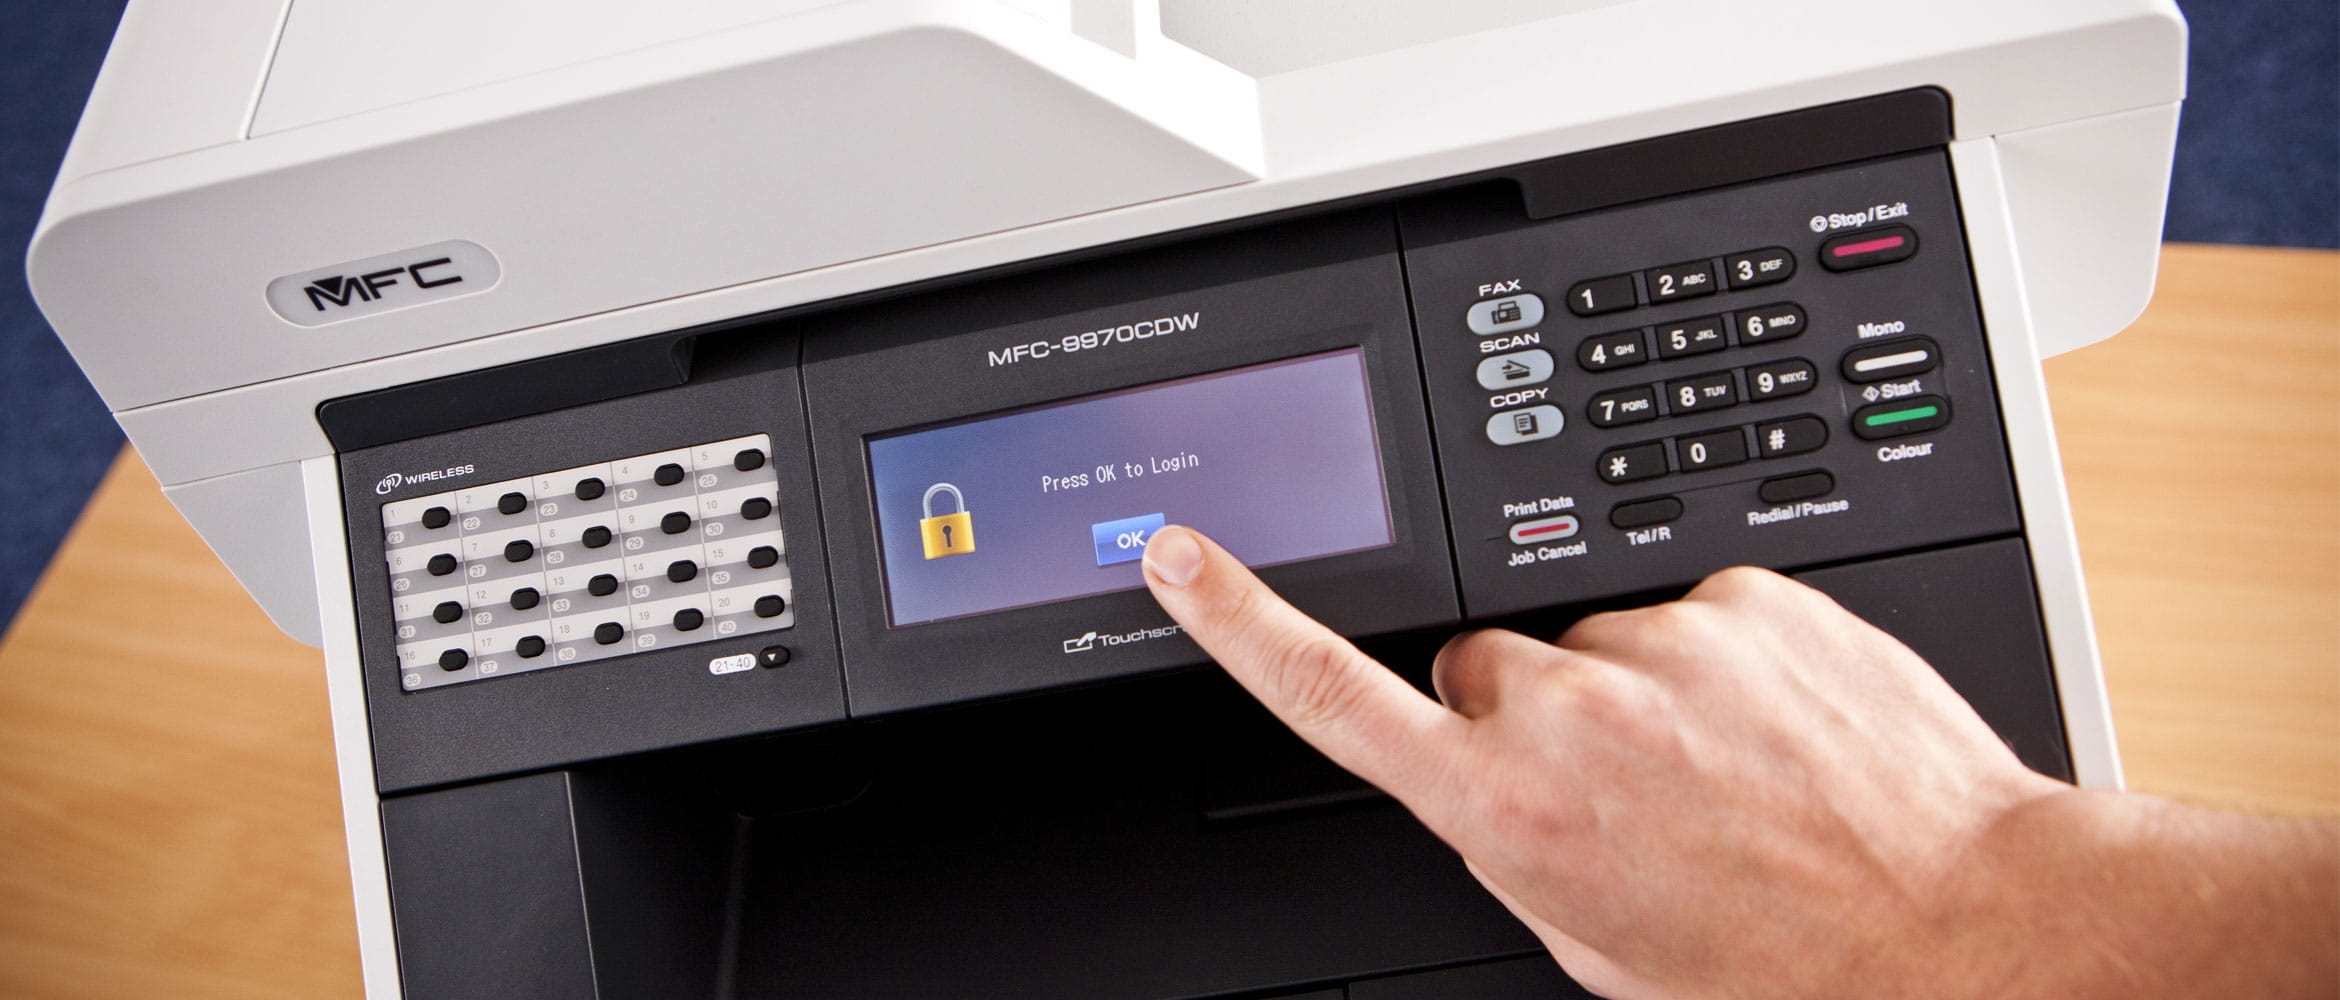 Secure Print Time Erase printer picture